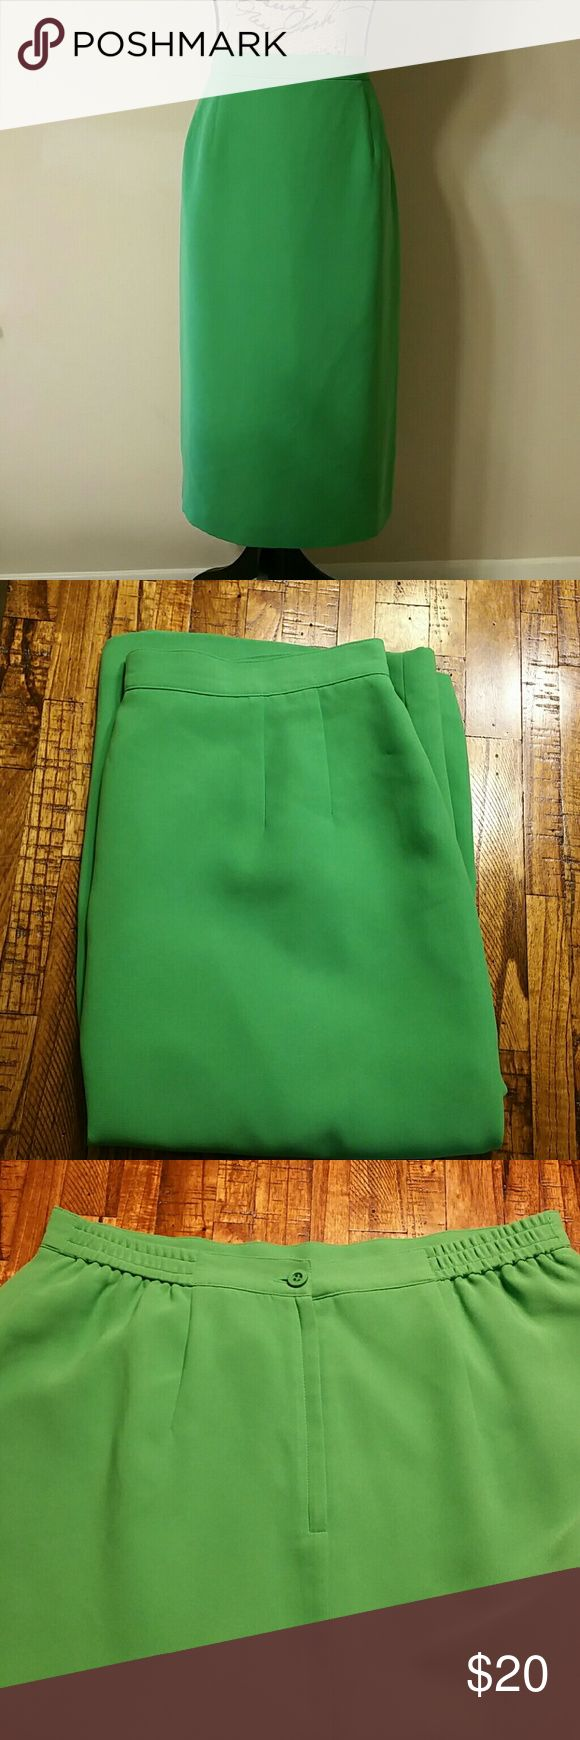 "{Joan Leslie} Green Midi Pencil Skirt Cute skirt perfect for Spring. Size is 14 (Vintage Size) but it fits more like a 12. Measurements: Waist: 16.5"" stretched, Length: 28.5"" Joan Leslie Skirts Midi"